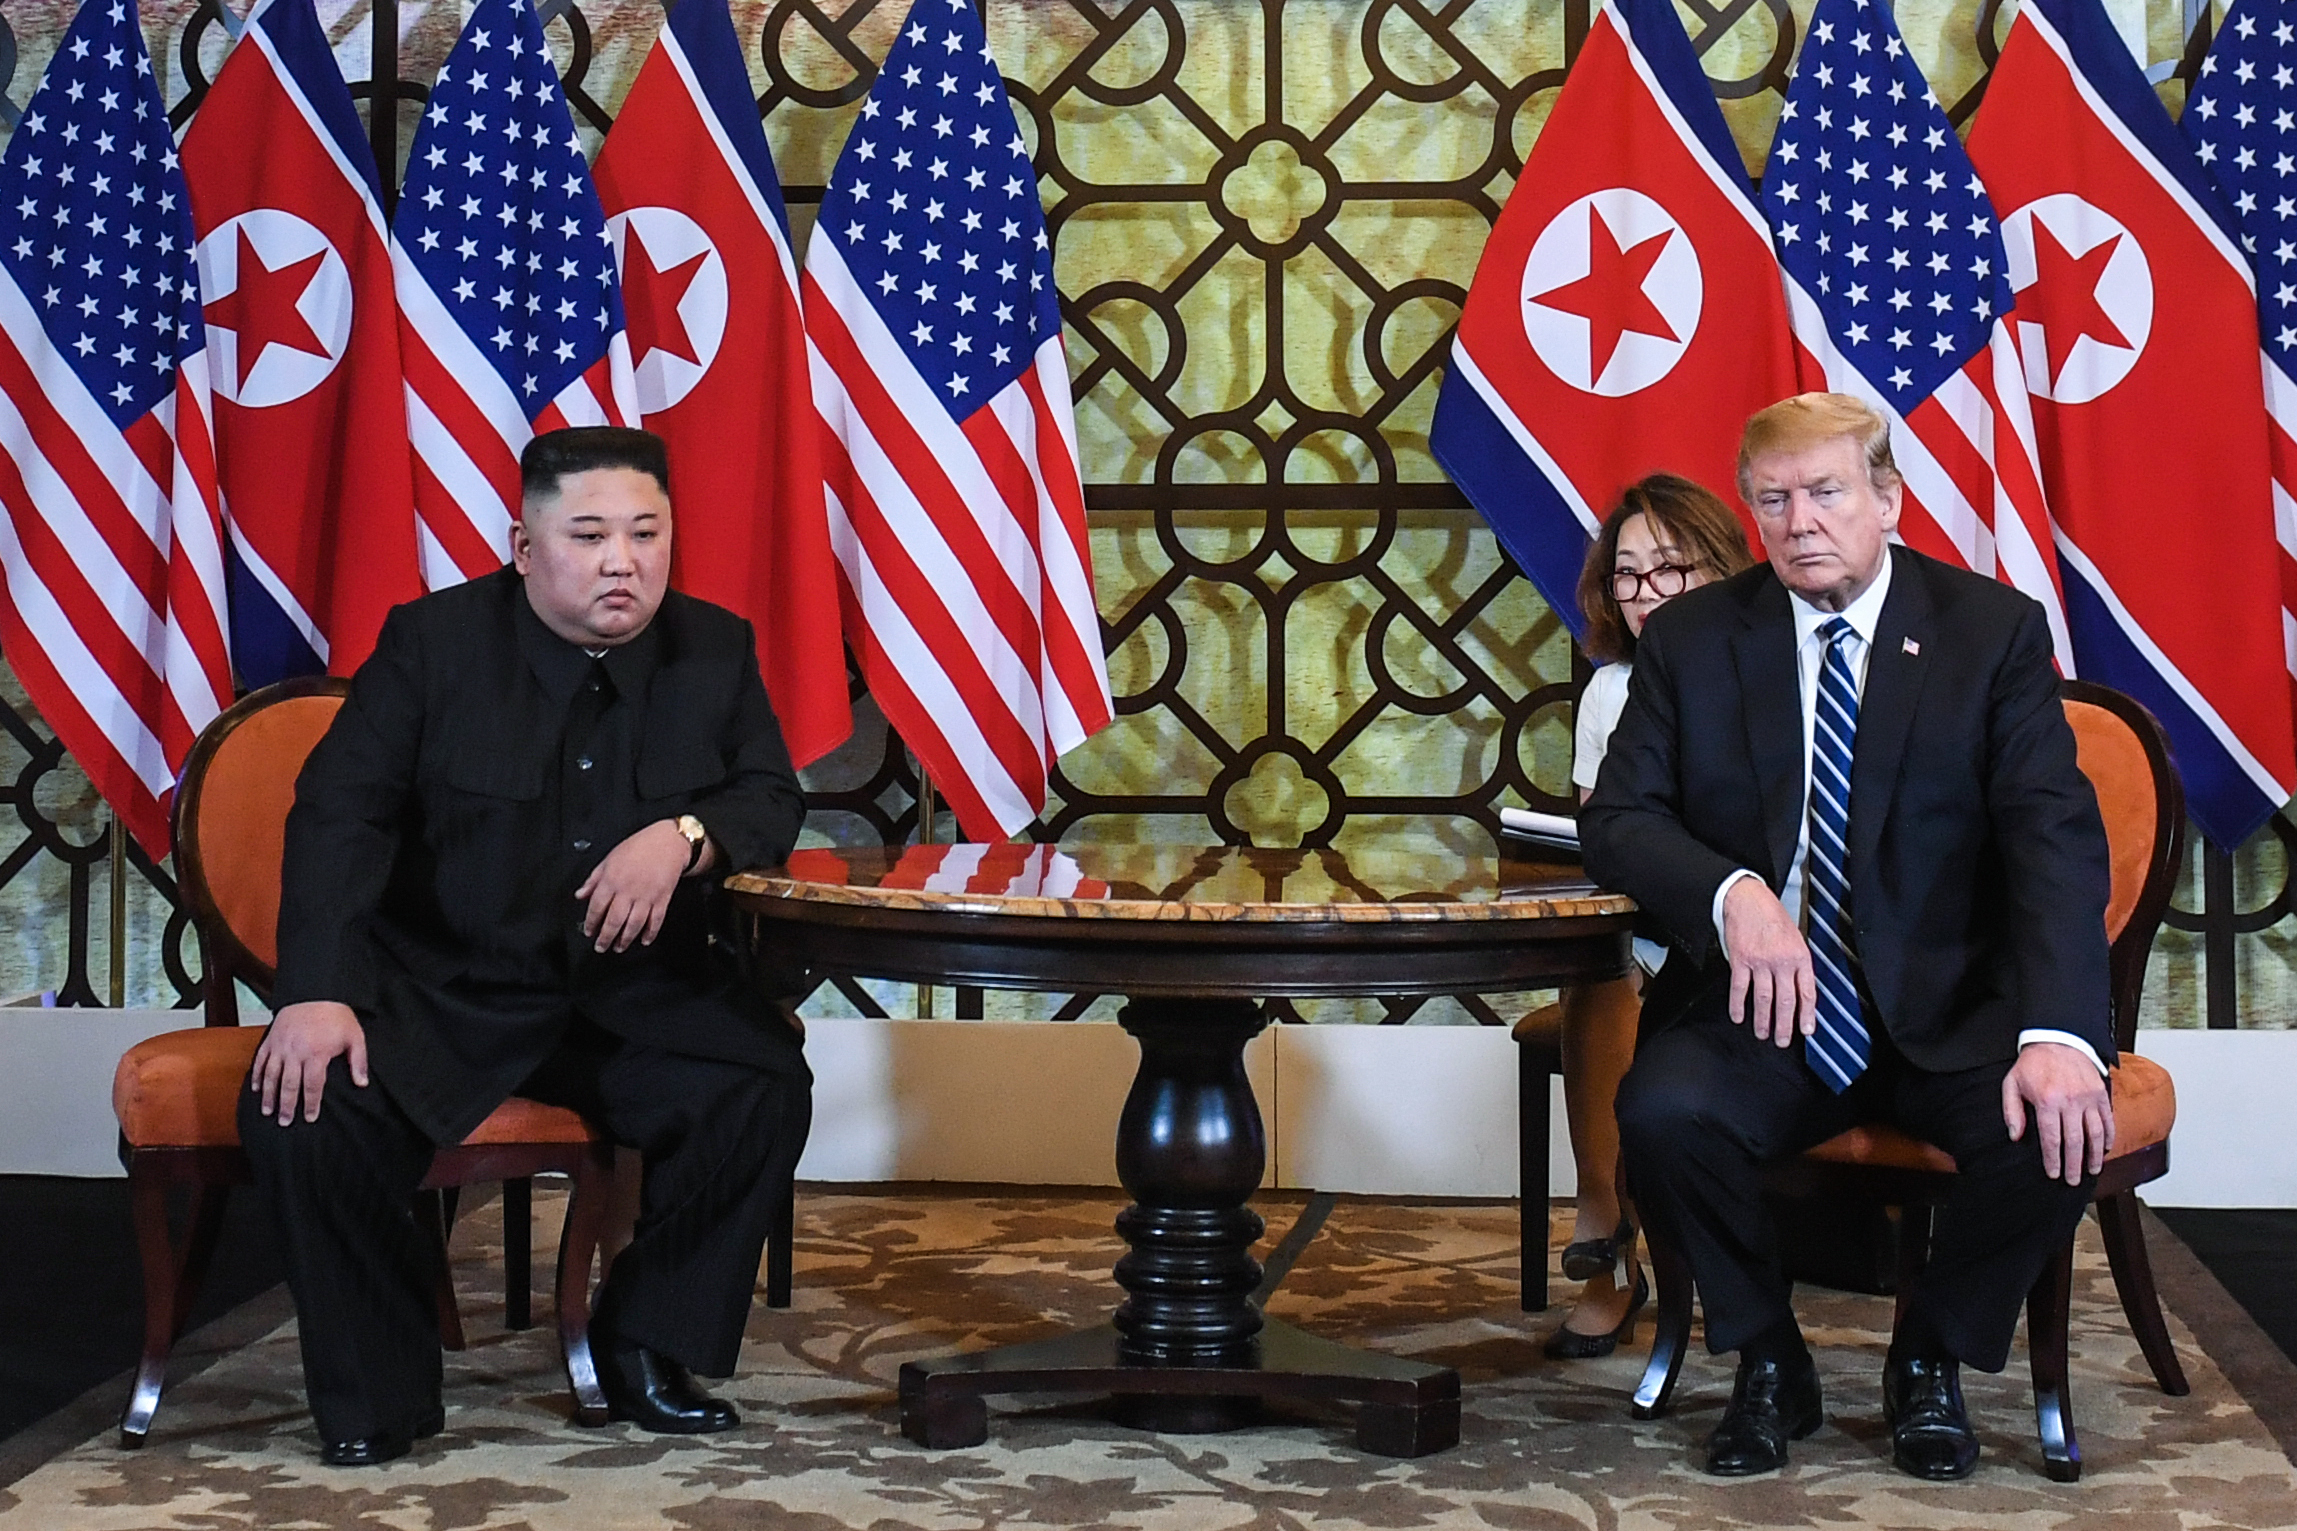 US President Donald Trump (R) and North Korea's leader Kim Jong Un hold a meeting during the second US-North Korea summit at the Sofitel Legend Metropole hotel in Hanoi on February 28, 2019. (SAUL LOEB/AFP/Getty Images)